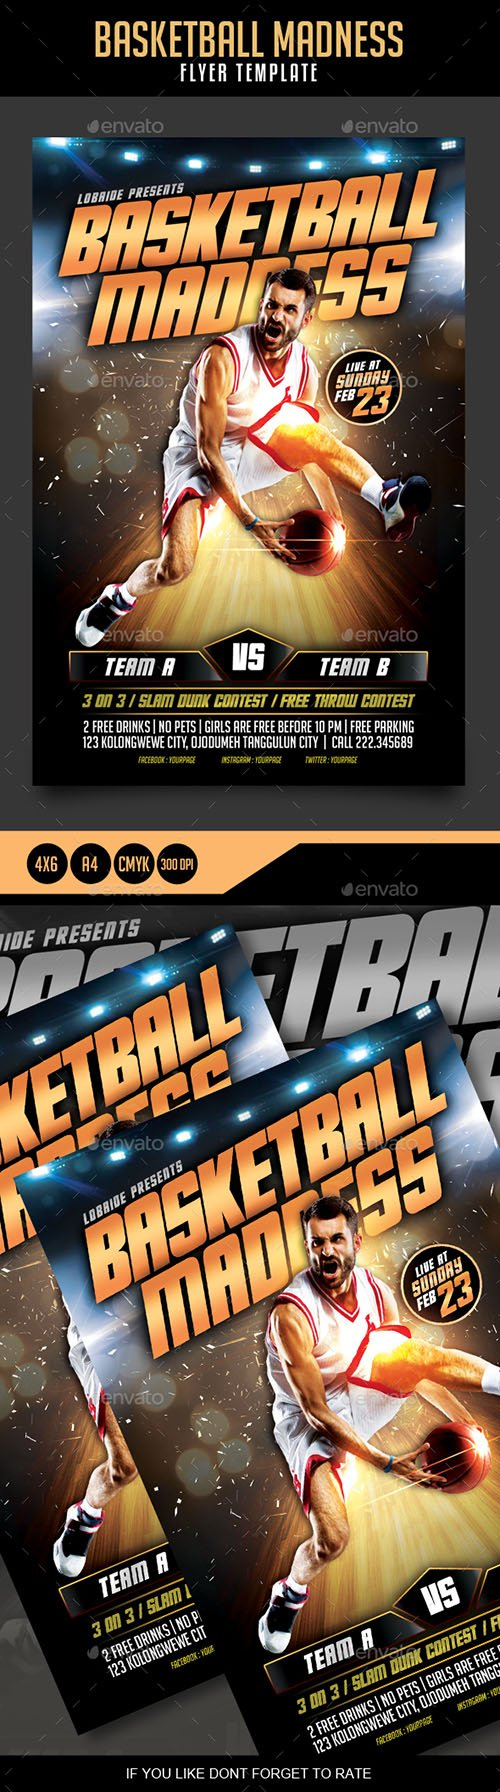 Basketball Madness Flyer 21414144